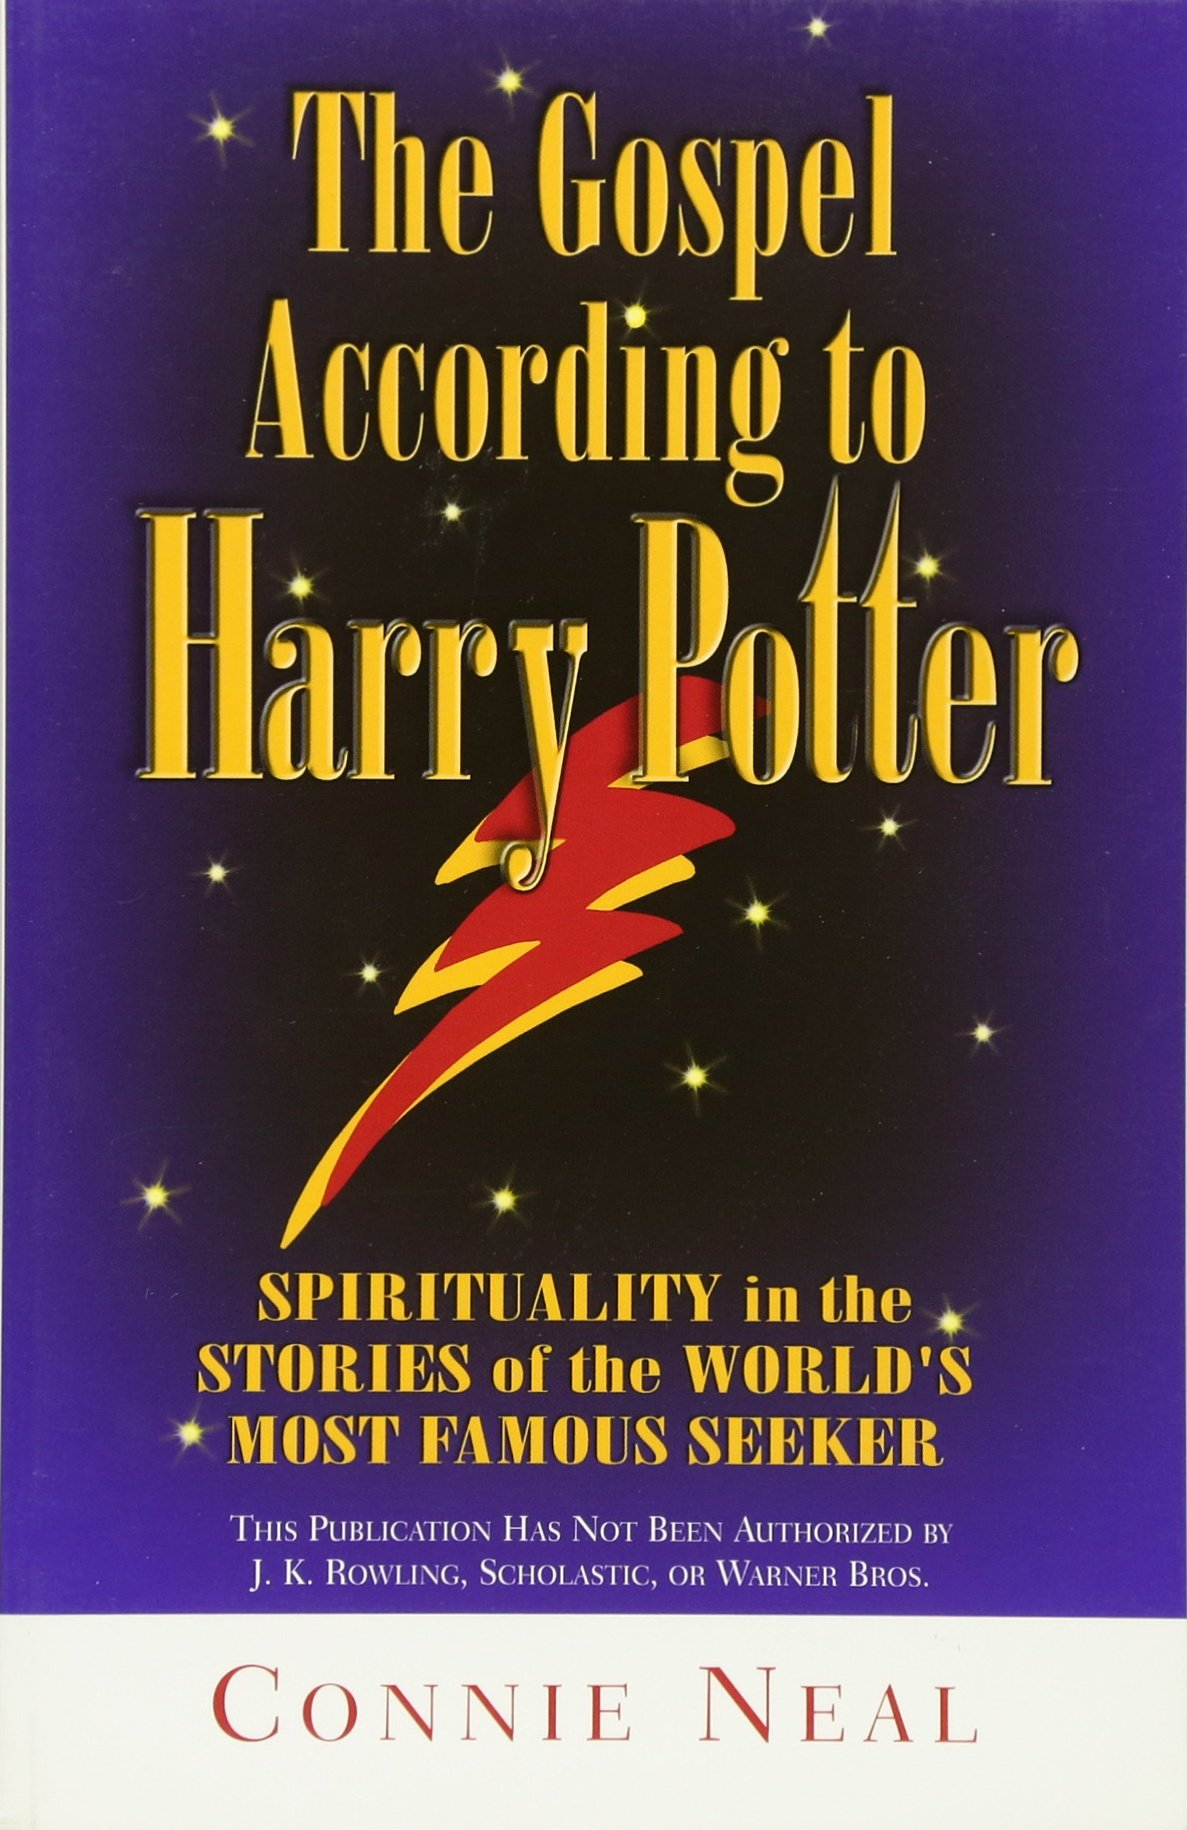 Download The Gospel According to Harry Potter: Spirituality in the Stories of the World's Most Famous Seeker ebook